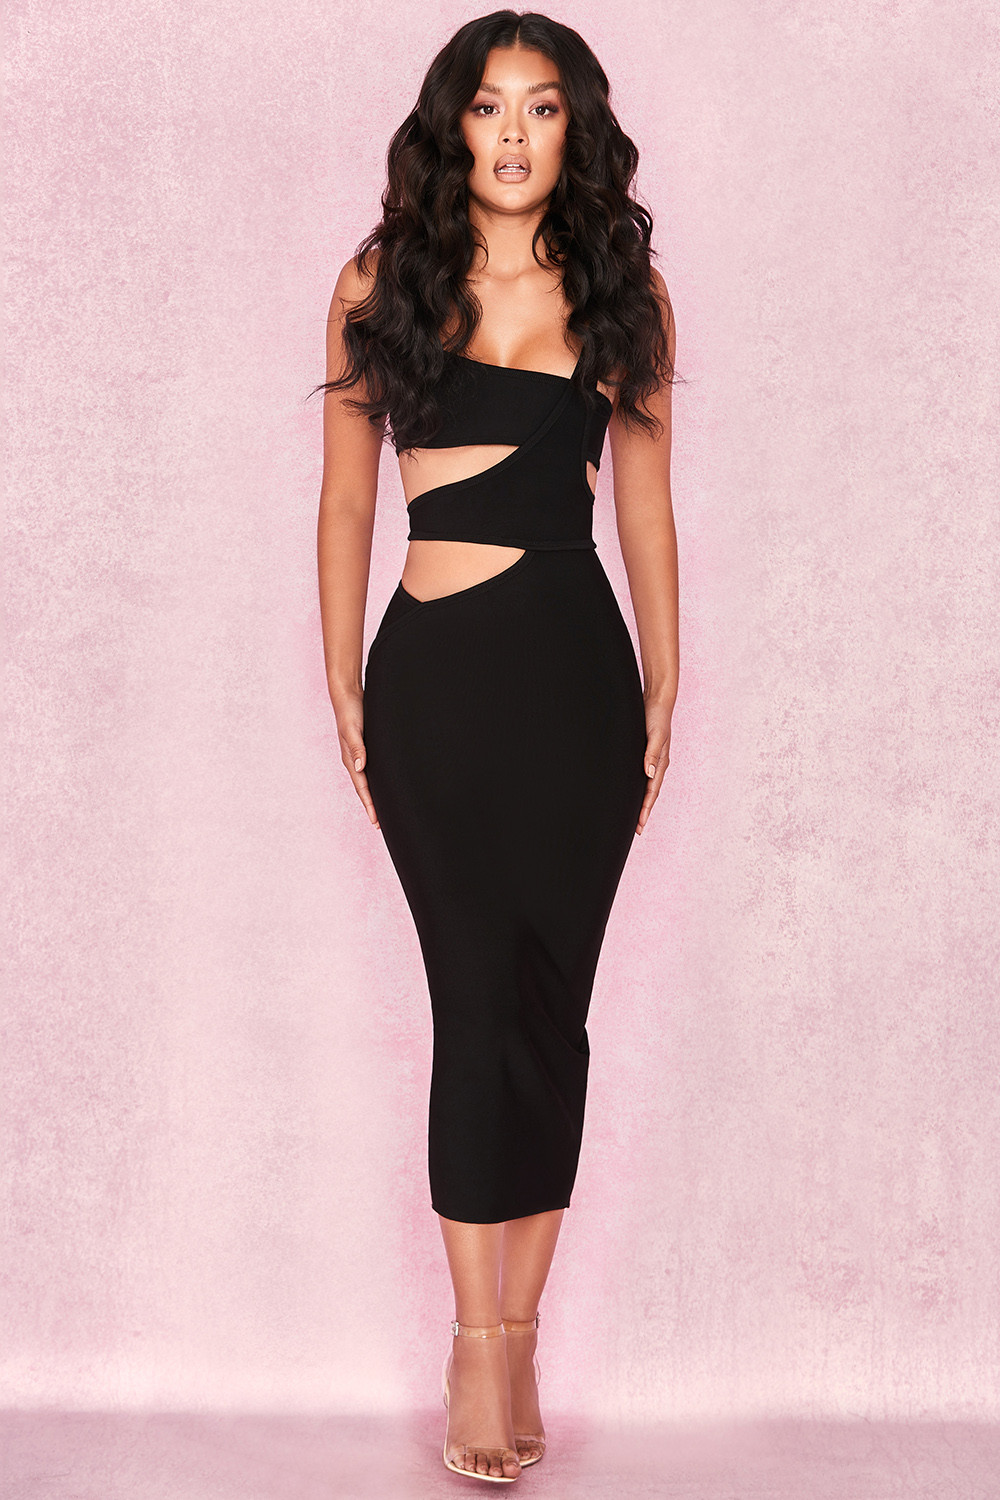 Clothing : Bandage Dresses : 'Miya' Black Bandage Cut Out Dress